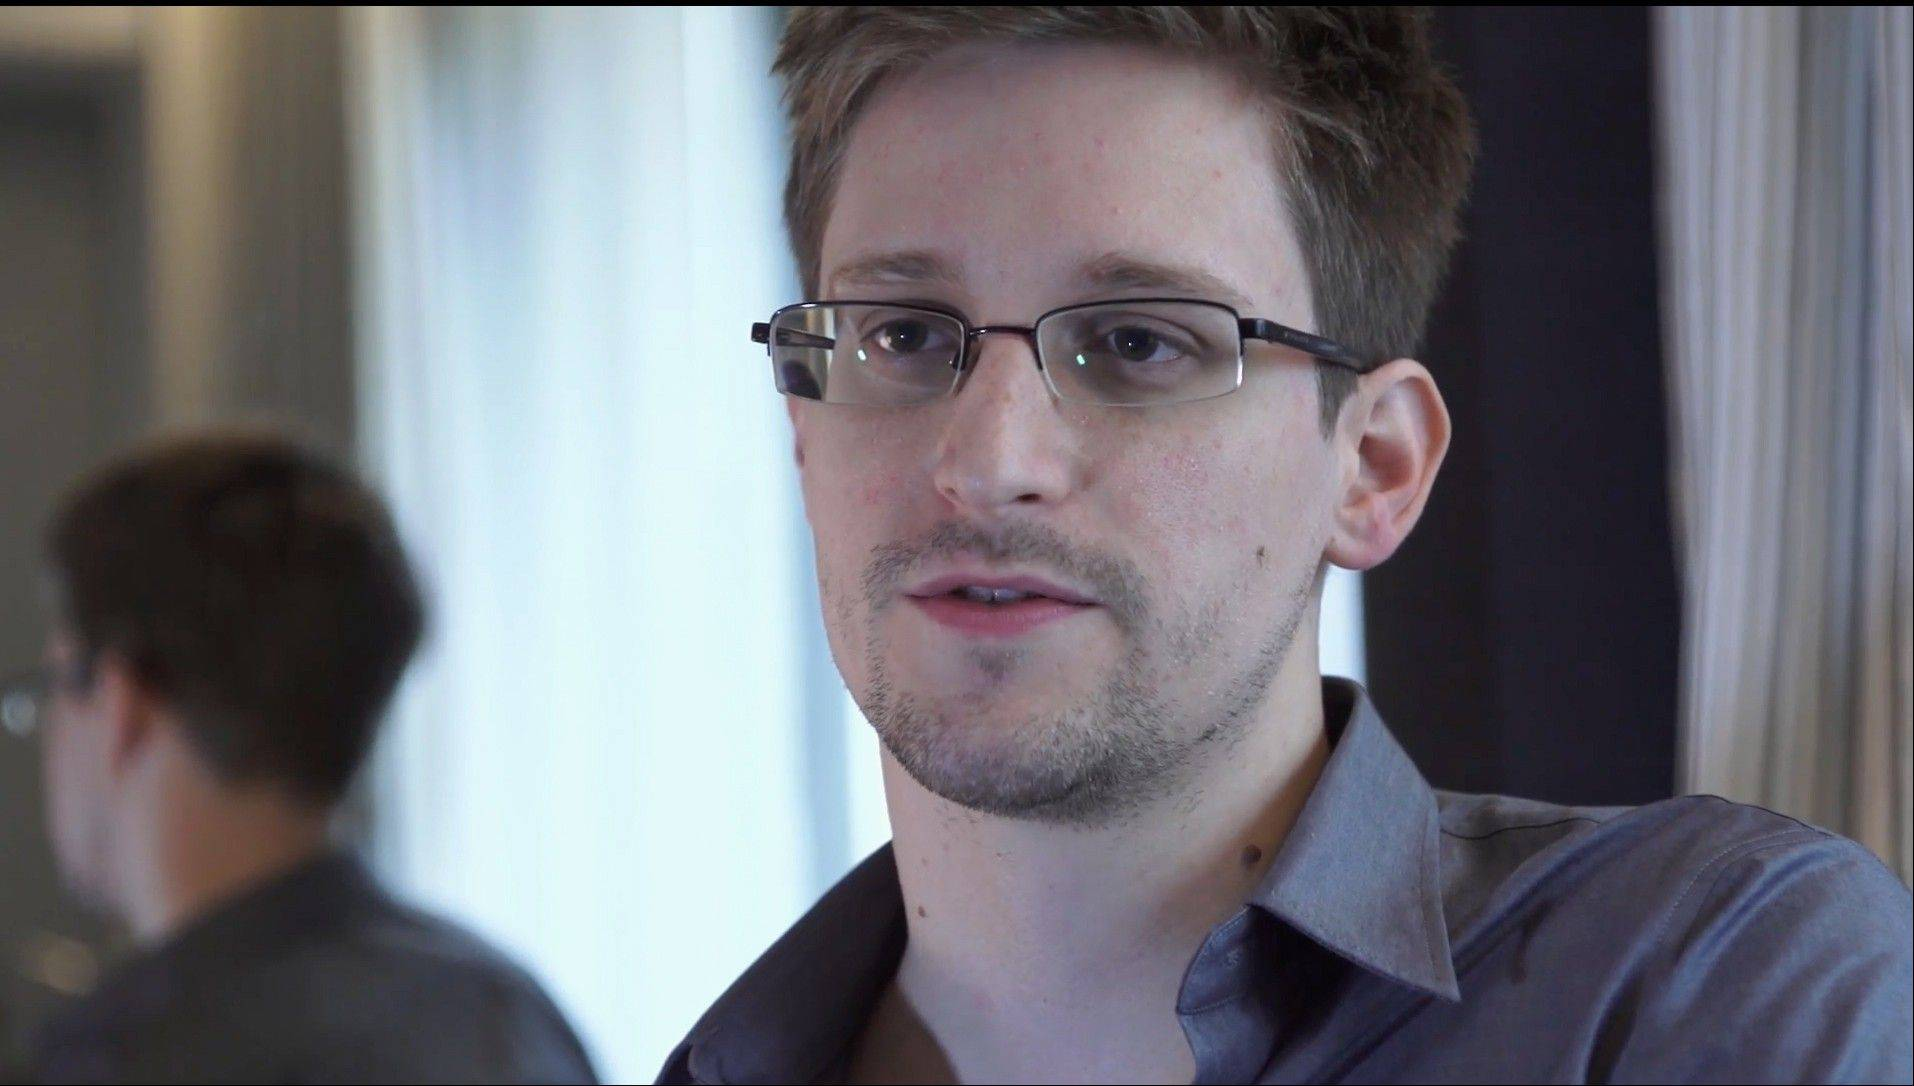 National Security Agency leaker Edward Snowden wrote in �an open letter to the Brazilian people� published Tuesday that he would be willing to help Brazil�s government investigate U.S. spying on its soil, but that he could do so only if granted political asylum.